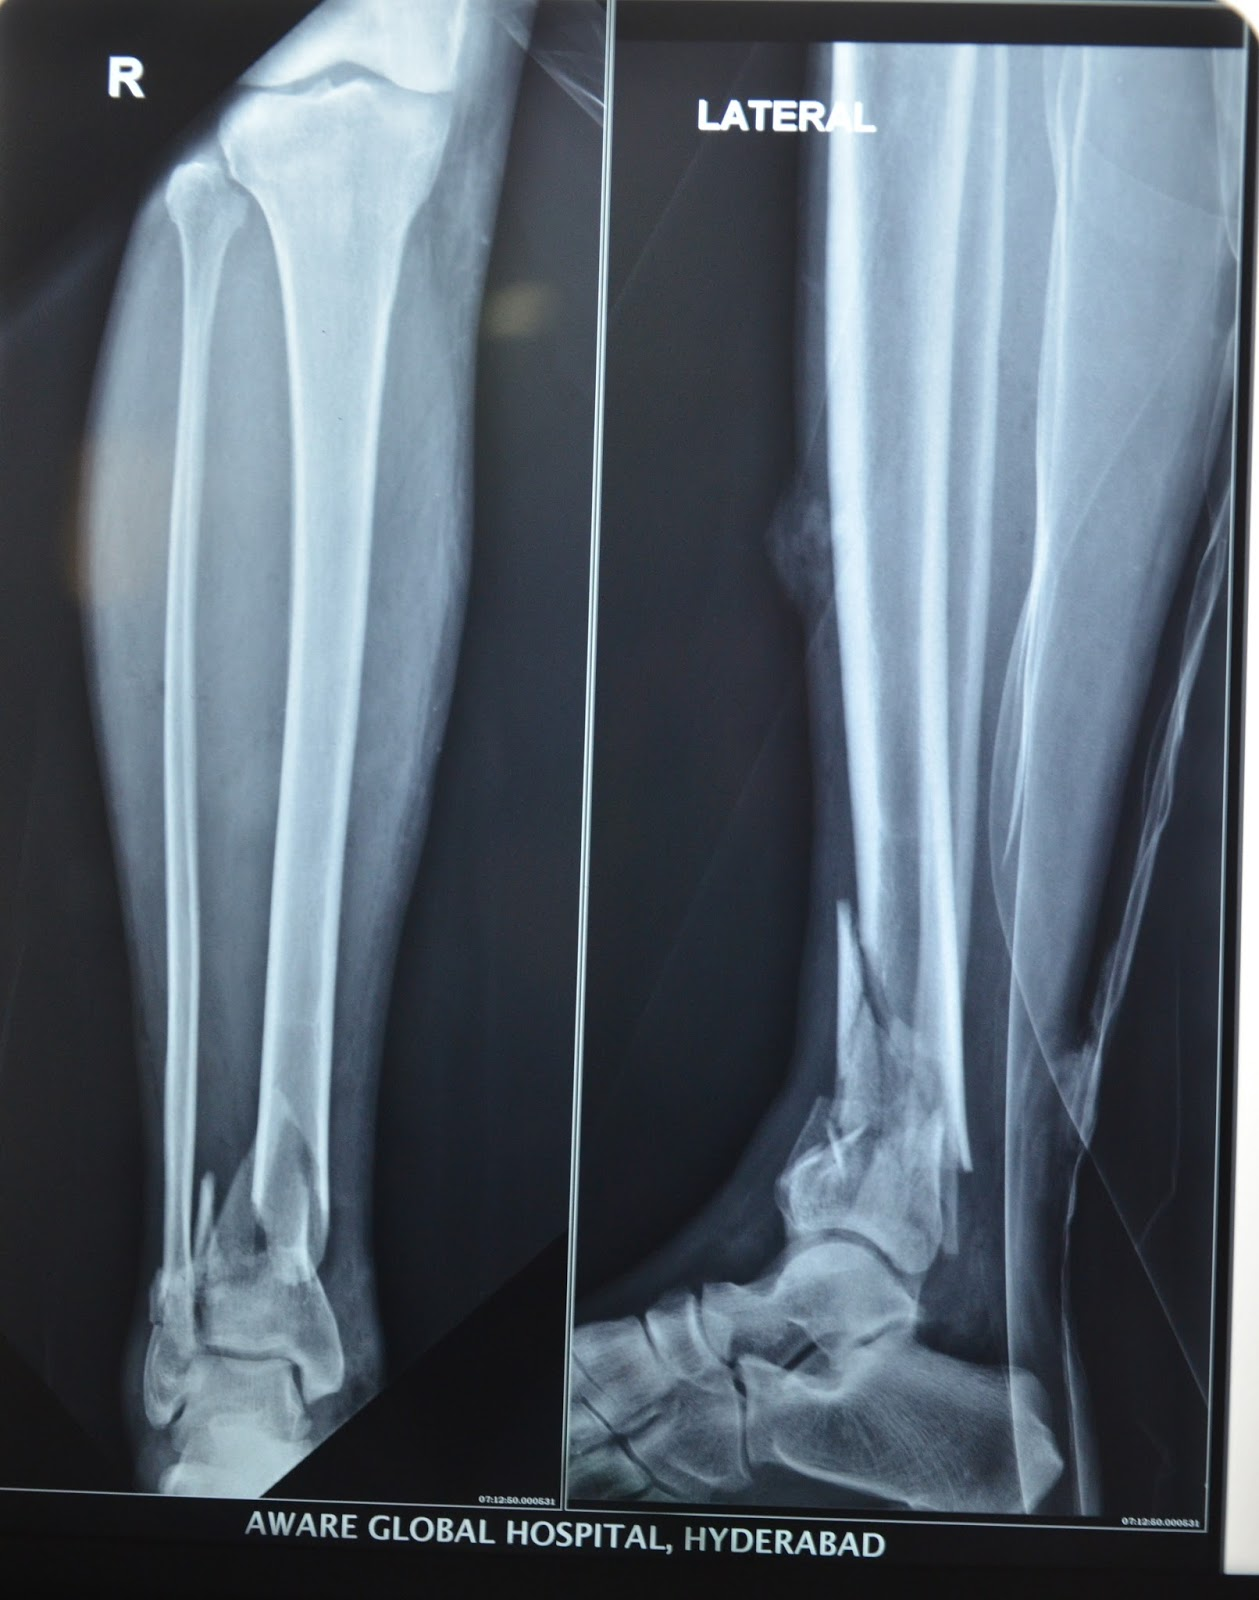 RADIOGRAPH OF RIGHT LEG SHOWING FRACTURE OF TIBIA